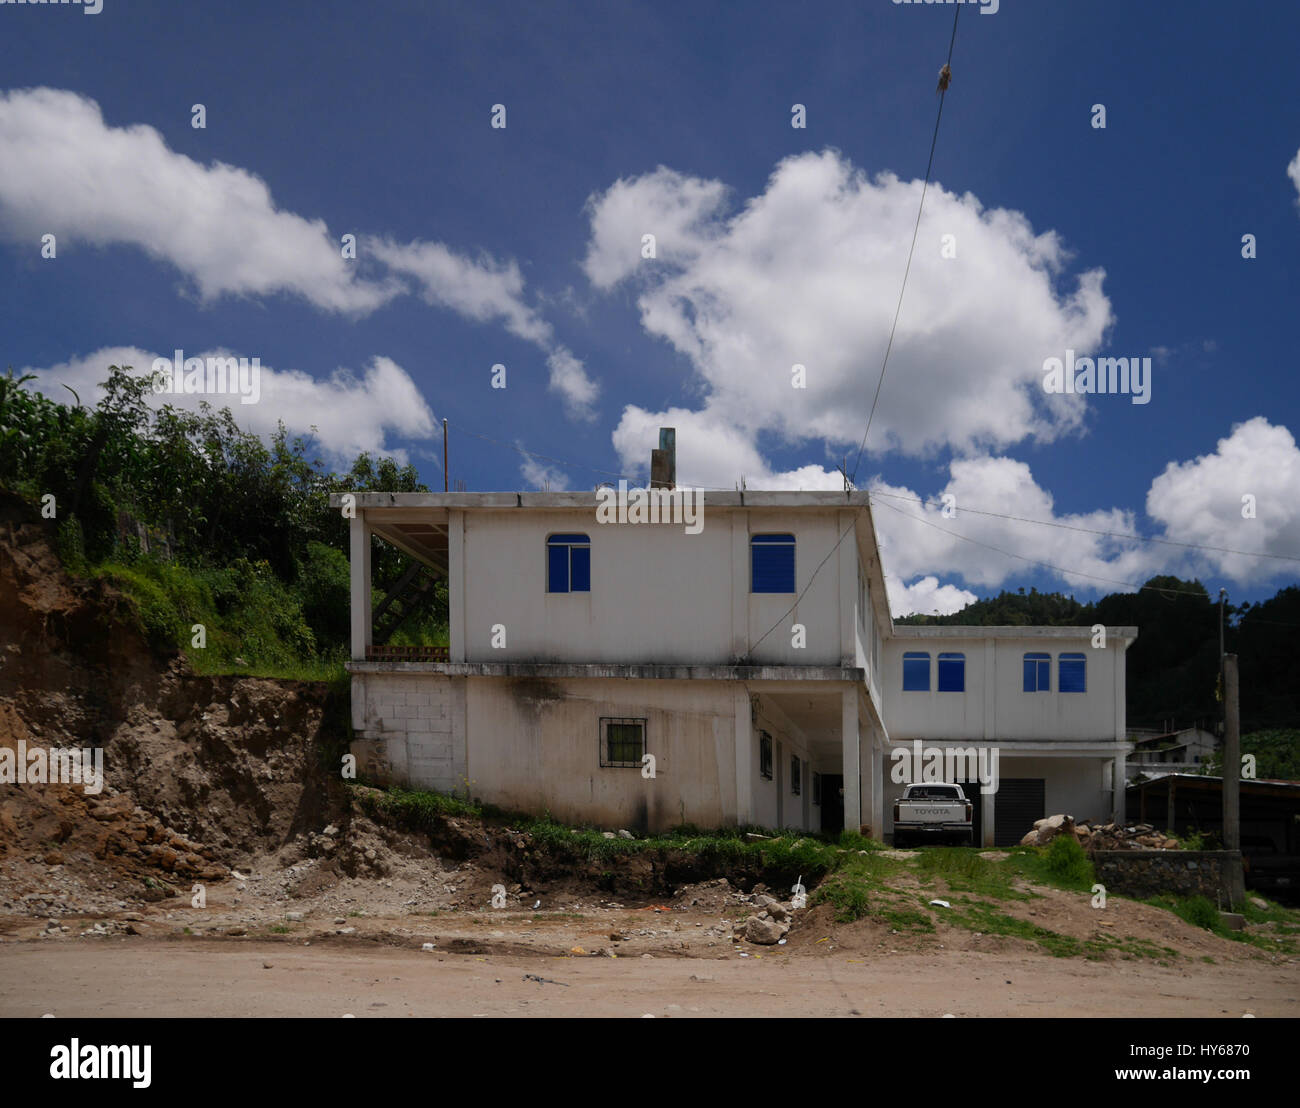 White fluffy clouds above single houses - Stock Image